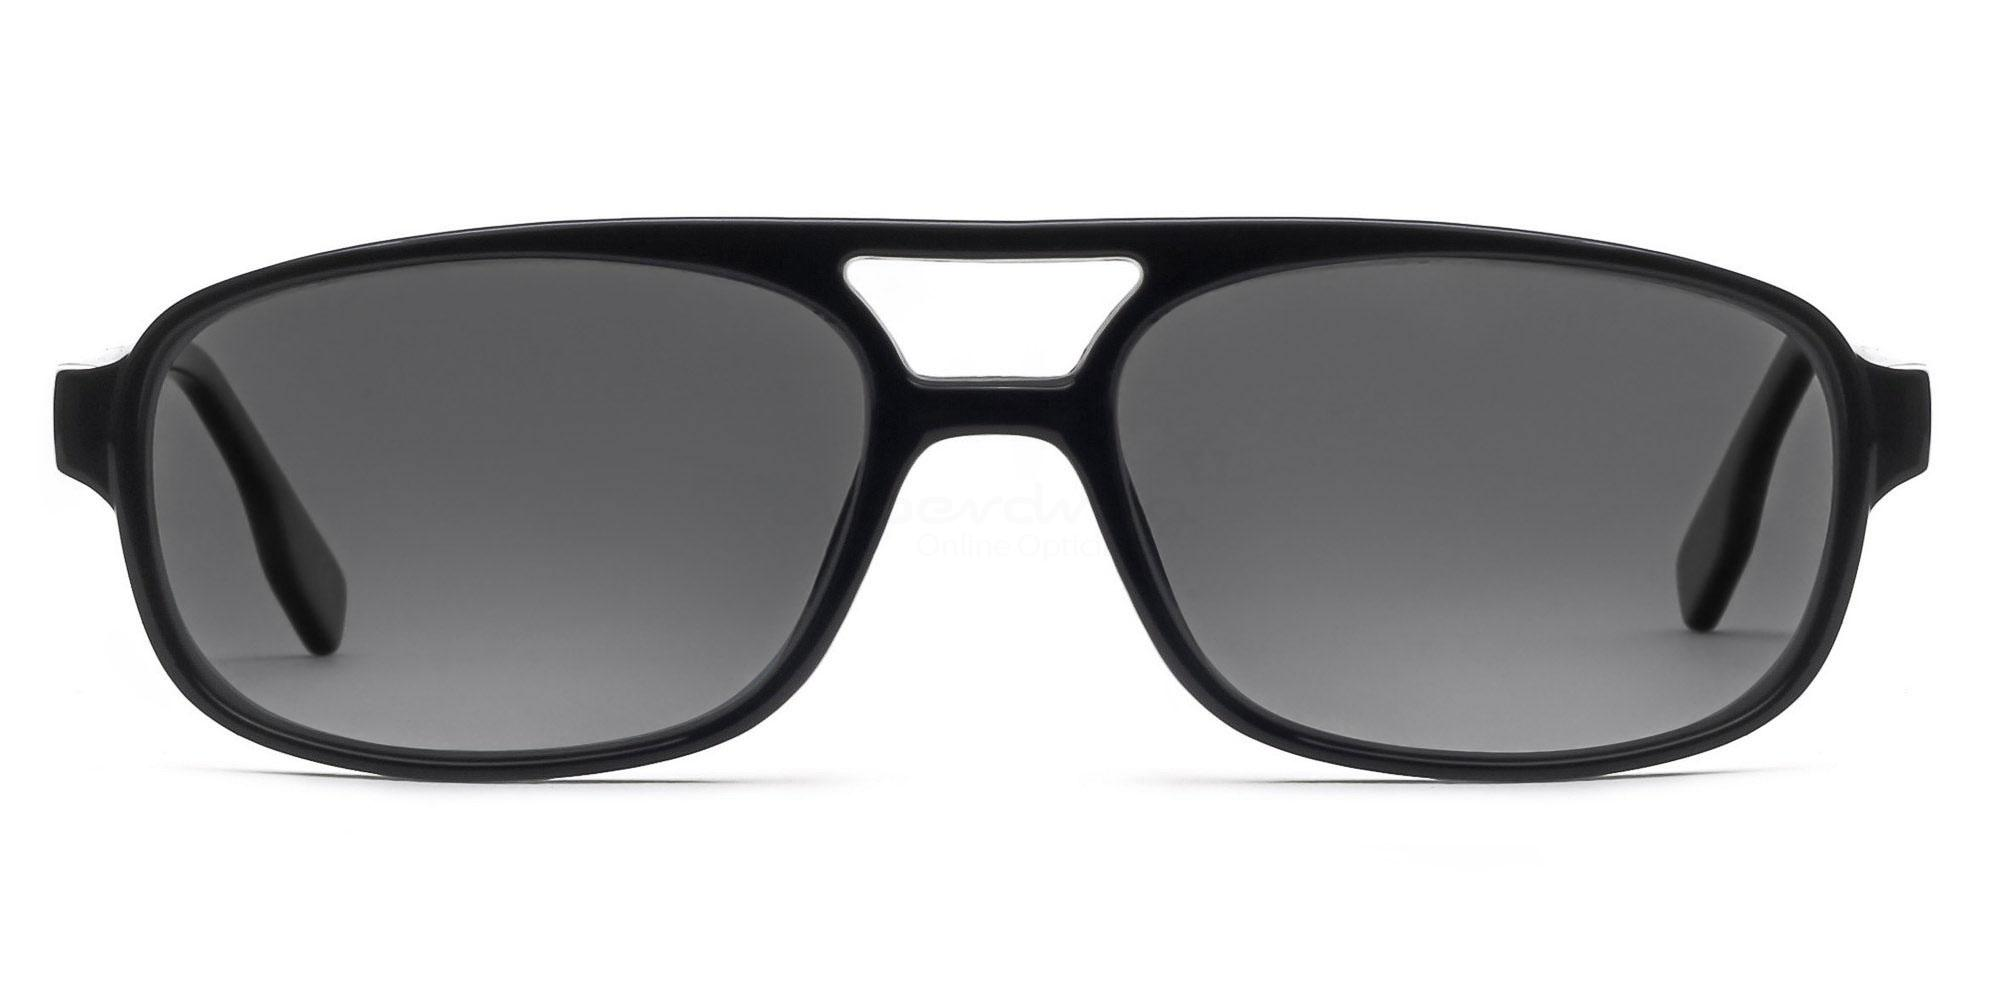 C01 Polarized Grey P2395 - Black (Polarized) Sunglasses, Neon